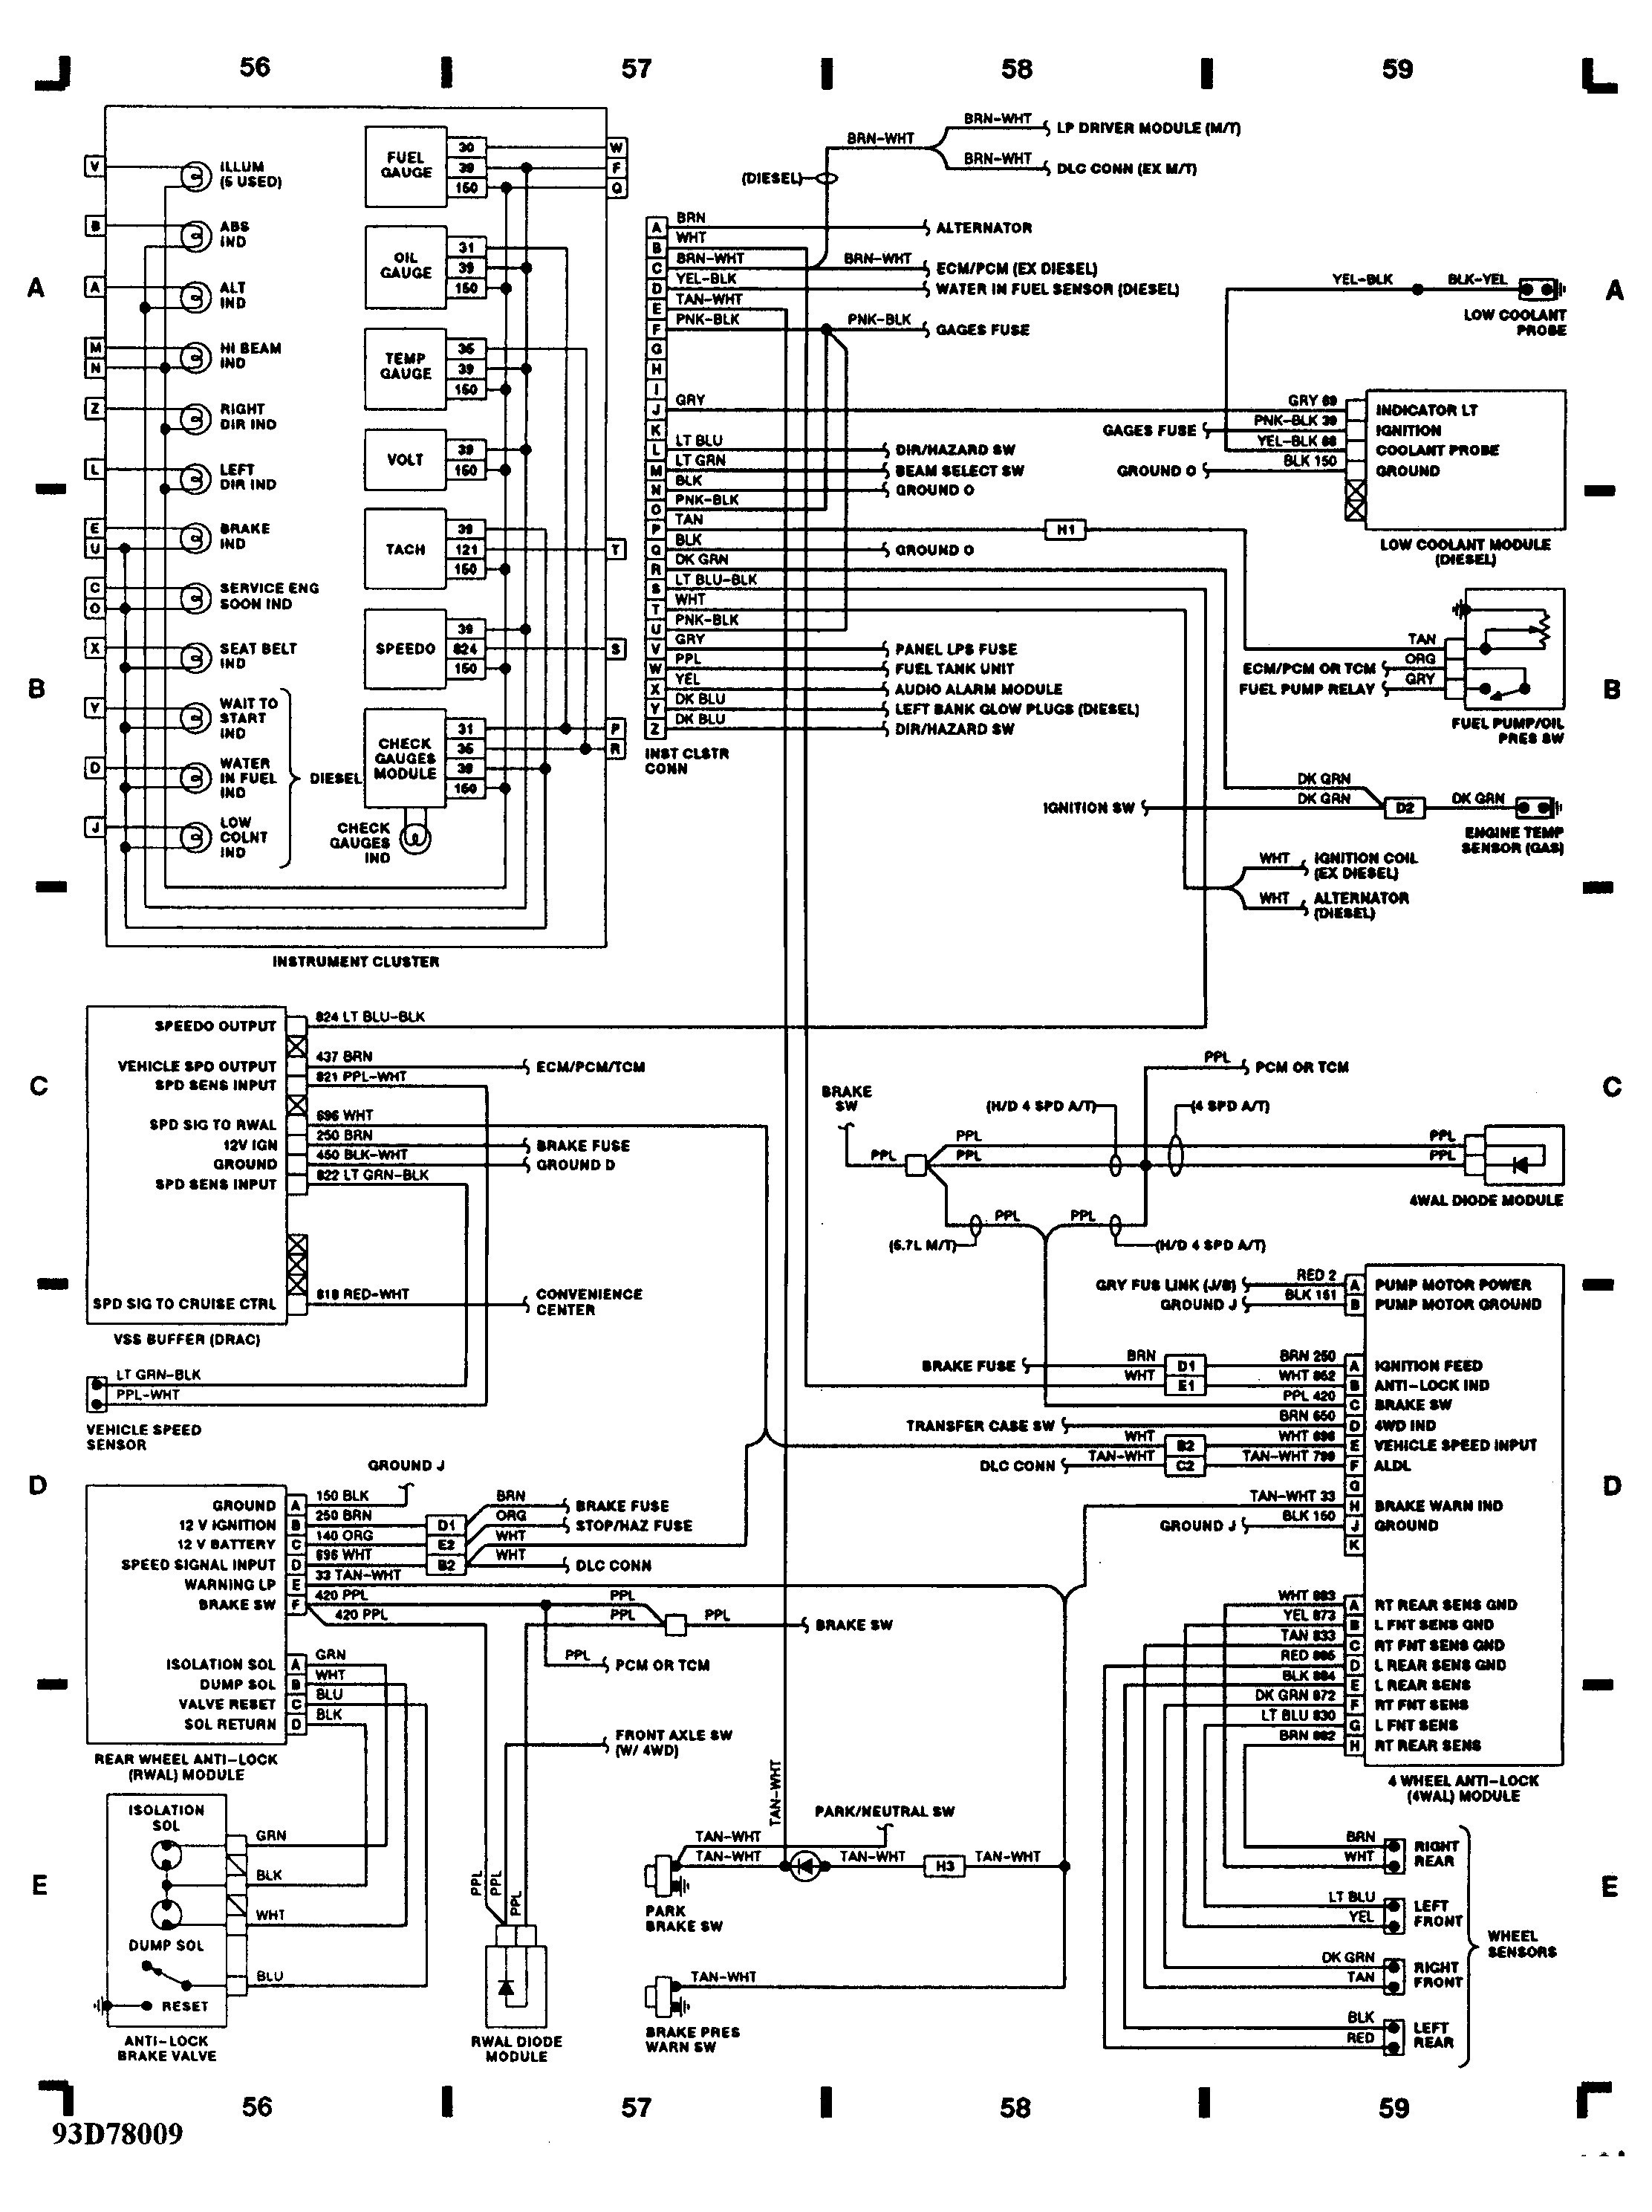 gm 3100 engine coolant diagram online wiring diagram datagm 3100 v6 engine  diagram 17 tai do